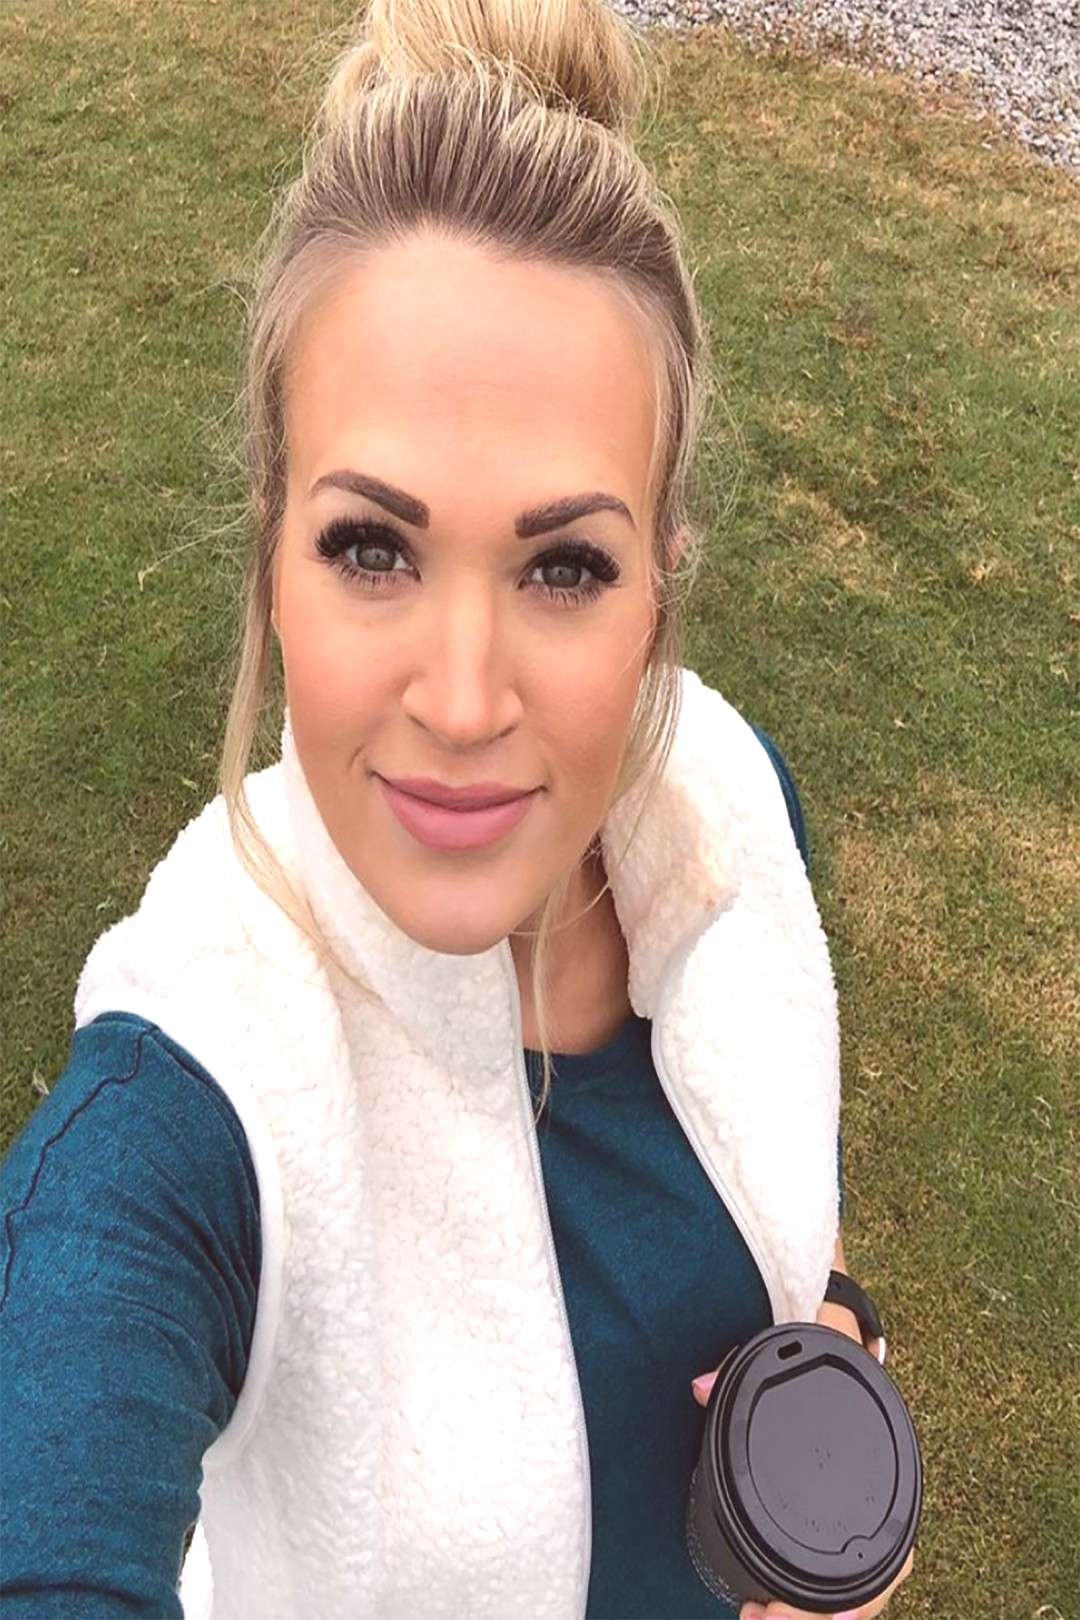 Carrie Underwood Is Officially a Soccer Mom — and Shes Celebrating with a Smiley Selfie!